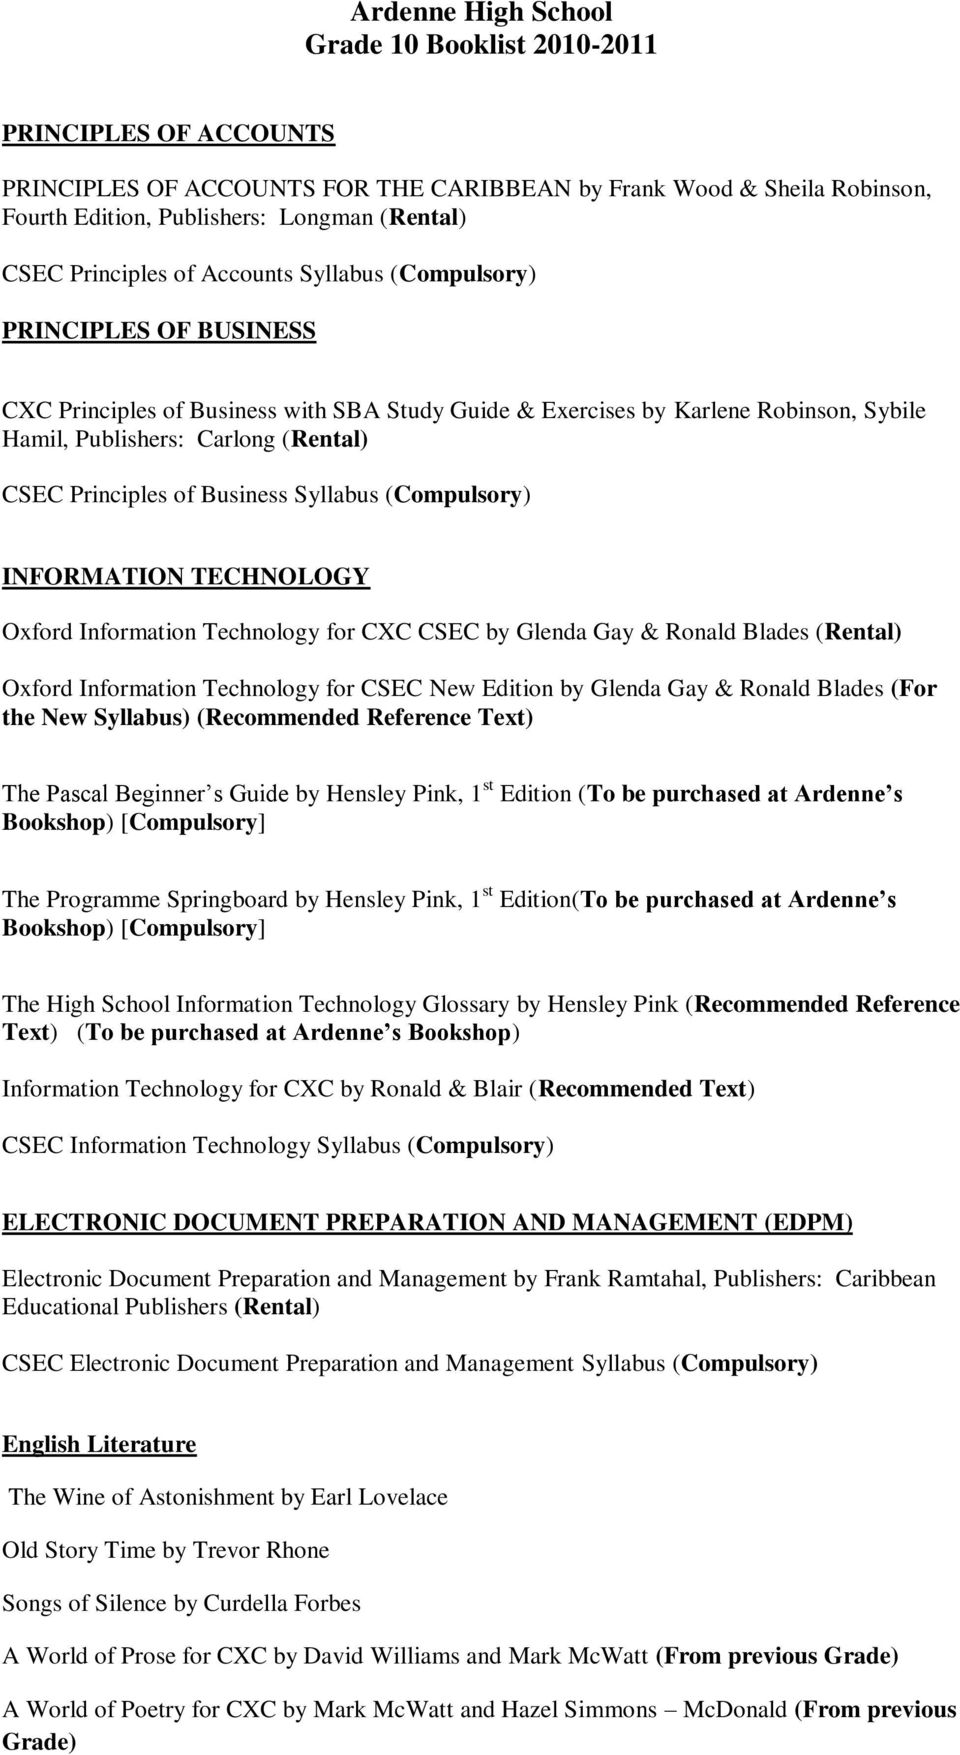 Ardenne high school grade 10 booklist pdf principles of business syllabus compulsory information technology oxford information technology for cxc csec by fandeluxe Image collections